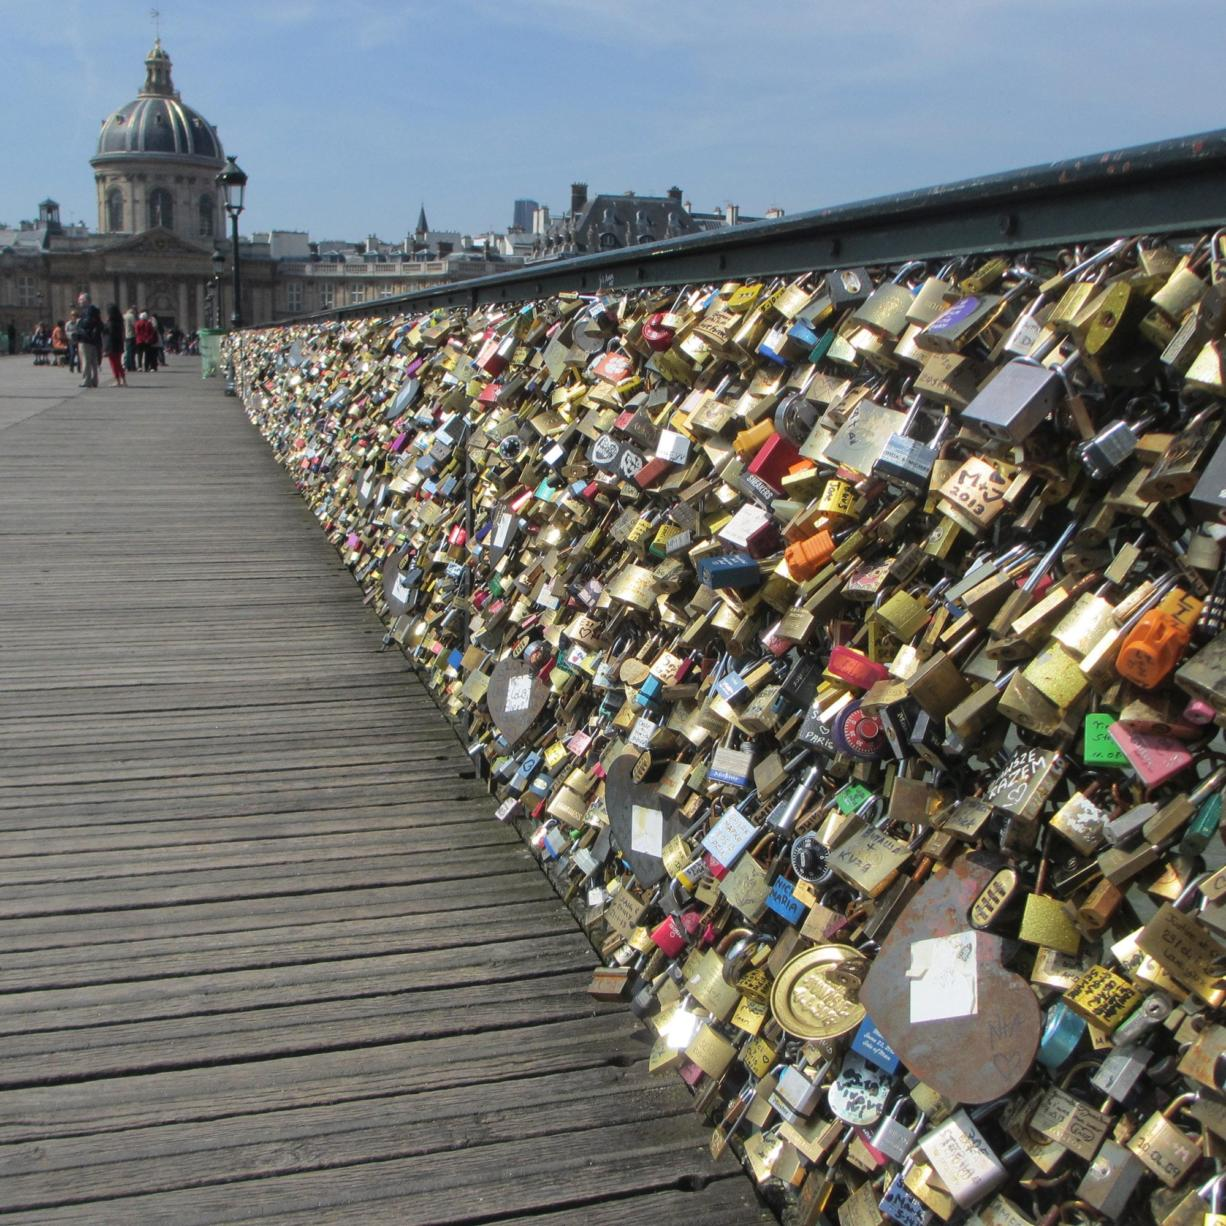 """Love can get heavy. Paris, the """"capital of romance,"""" according to its deputy mayor, cut 45 tons of padlocked """"commitment"""" off of the Pont des Arts pedestrian bridge in the summer of 2015. It didn't fish the more than 700,000 keys out of the water, though. (Scott Hewitt/The Columbian)"""